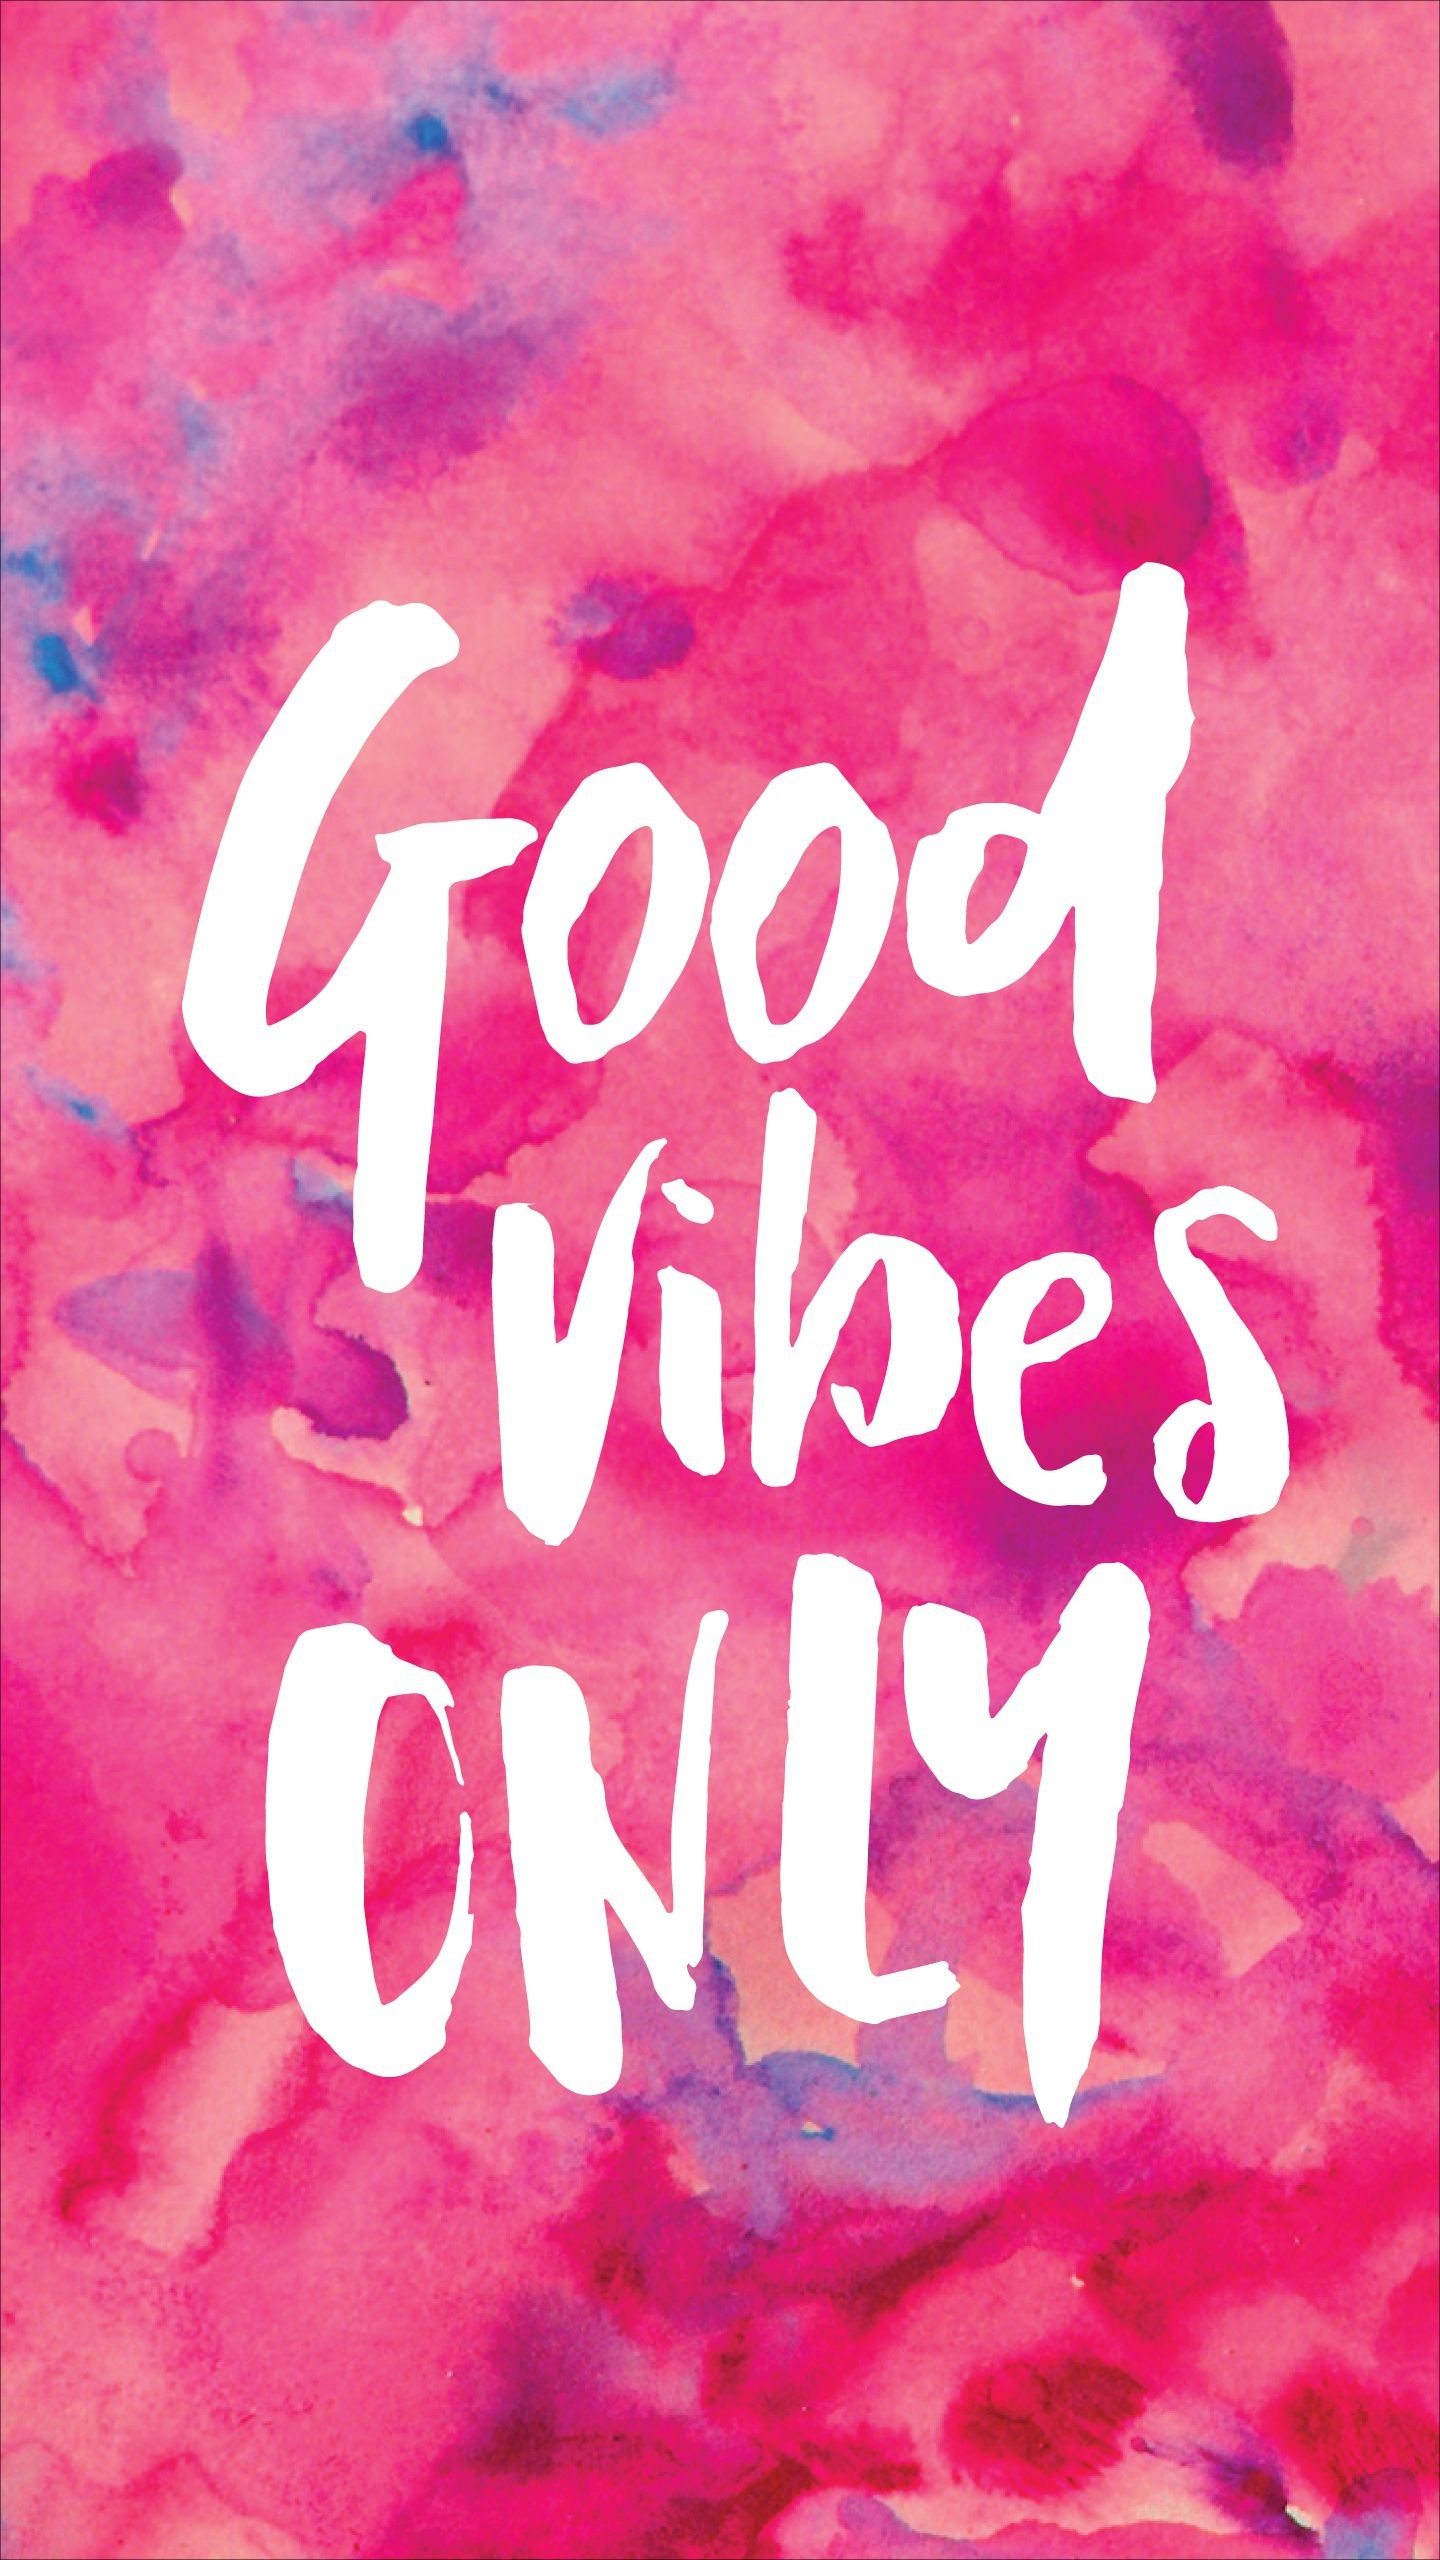 Res: 1440x2560, Good Vibes Only Wallpaper